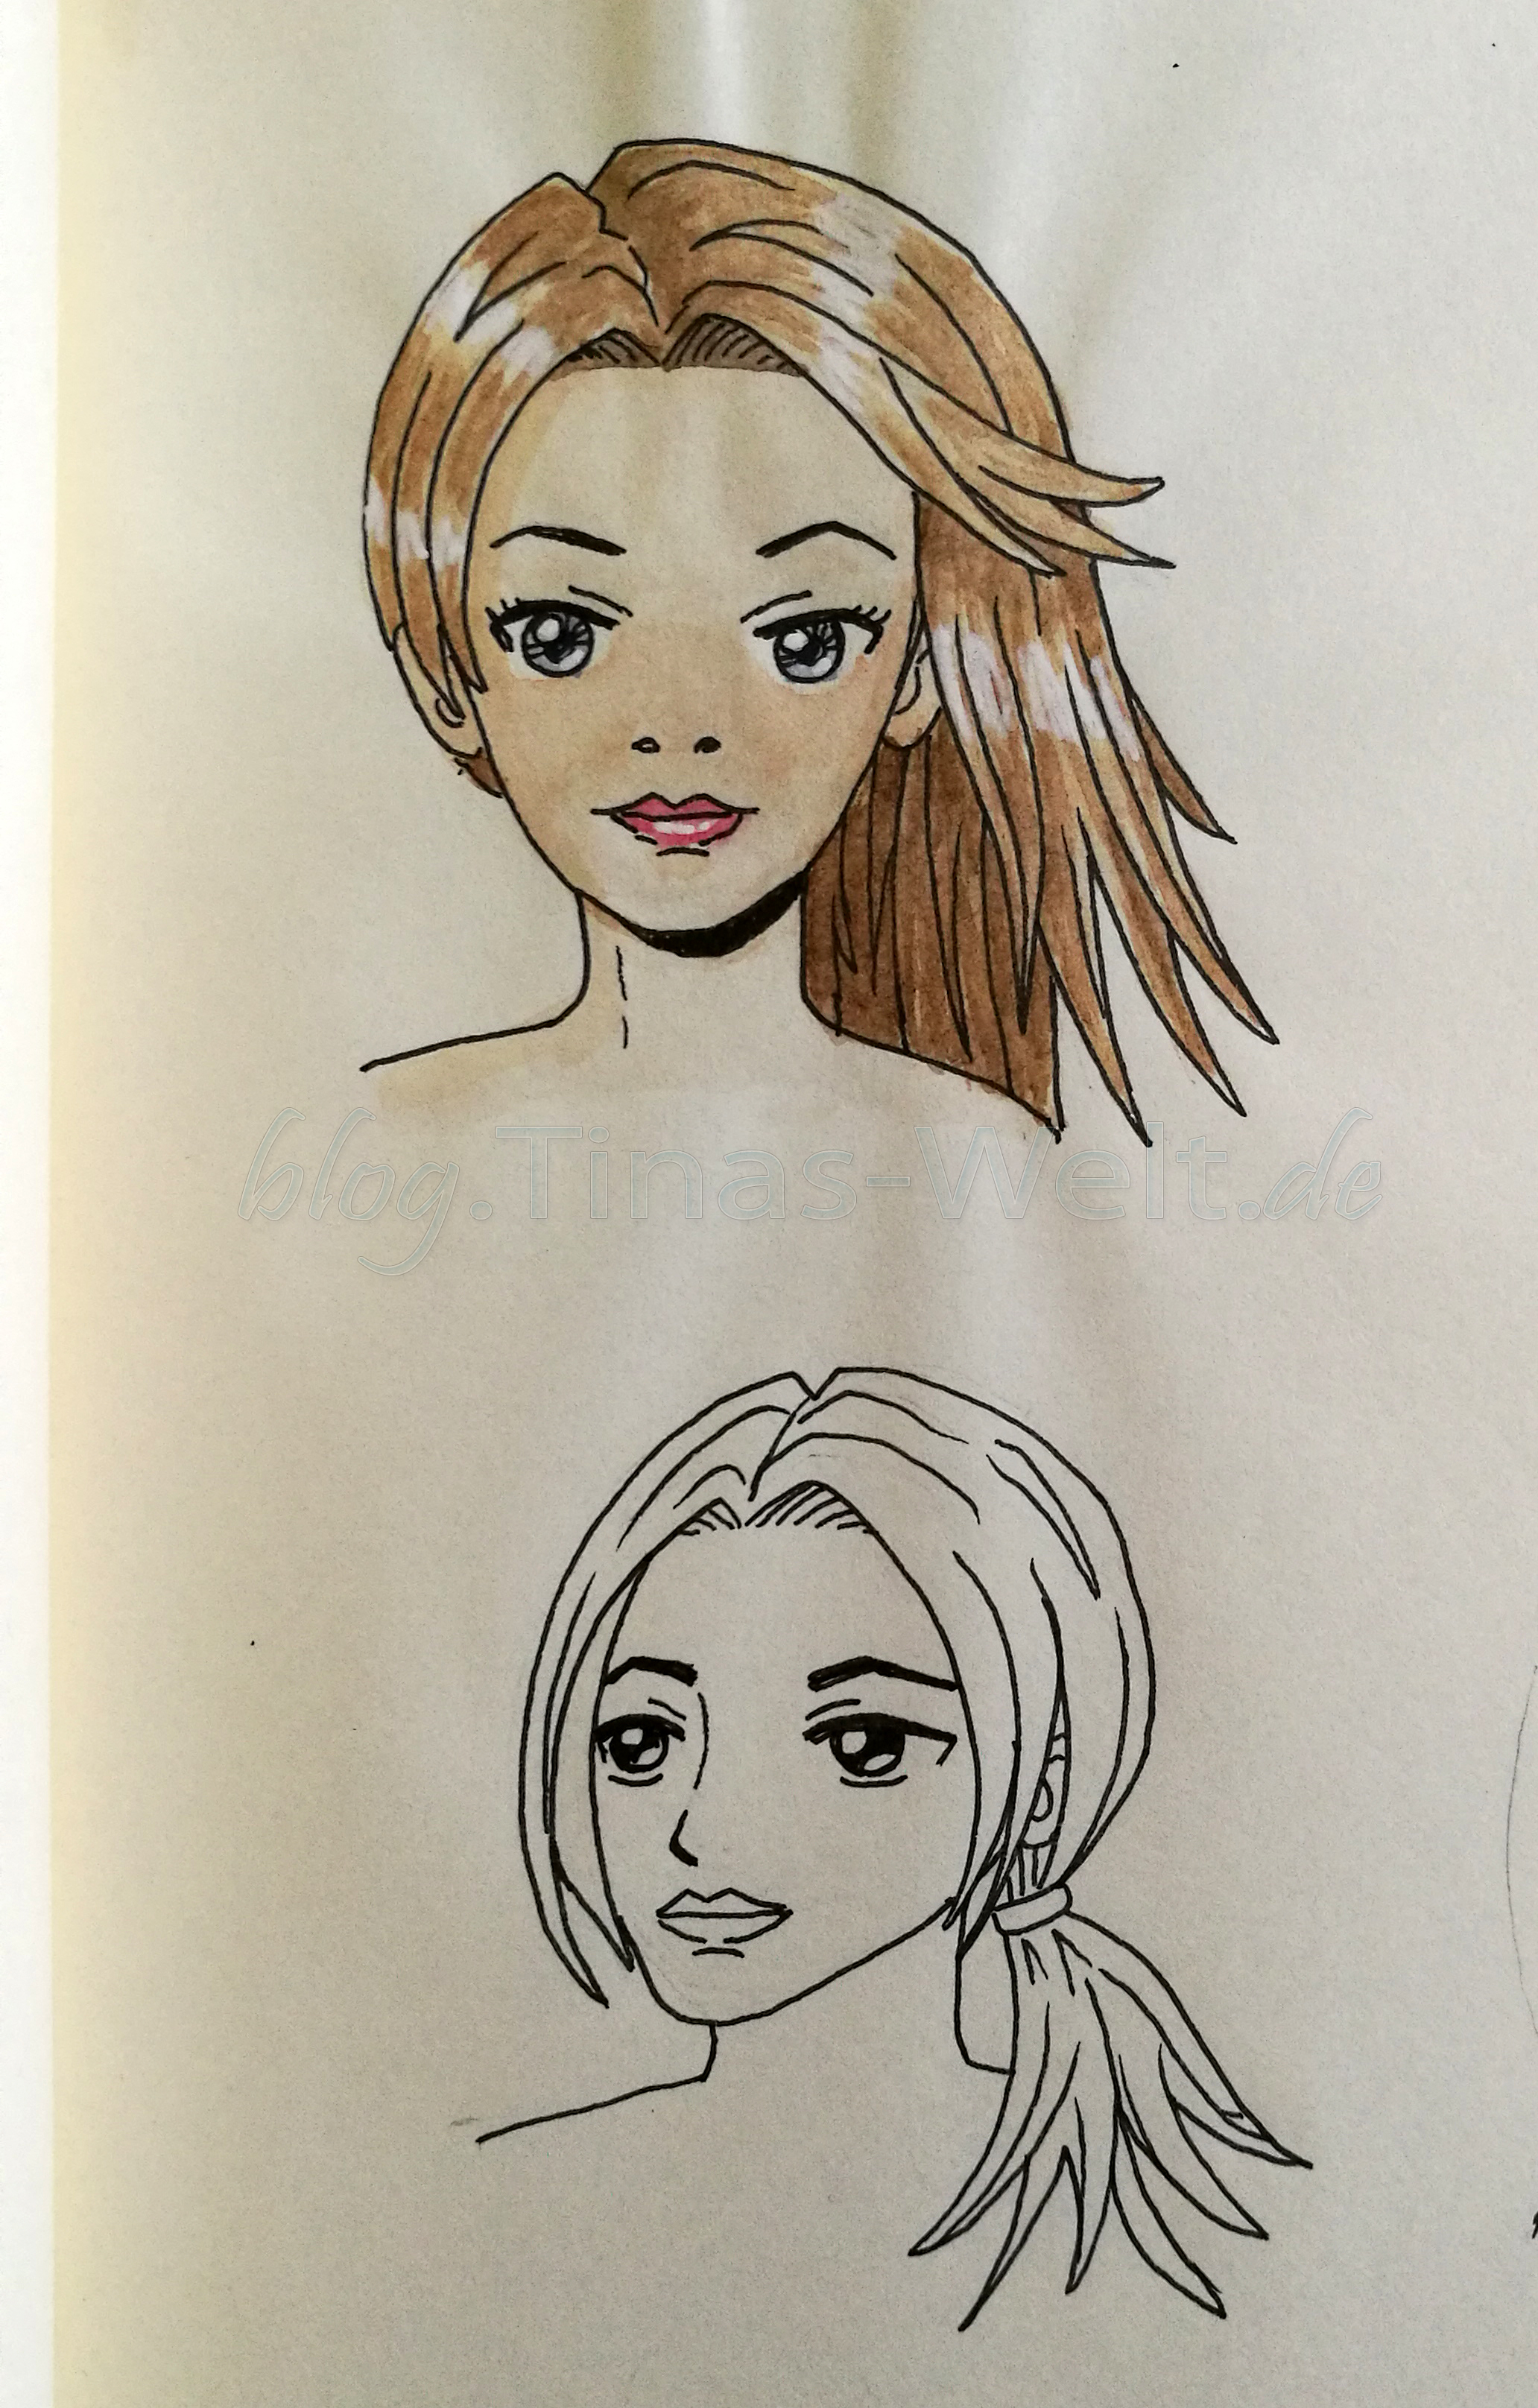 15 Quick And Cute Hairstyles For University Girls: Zwei Portraits Im Manga Stil